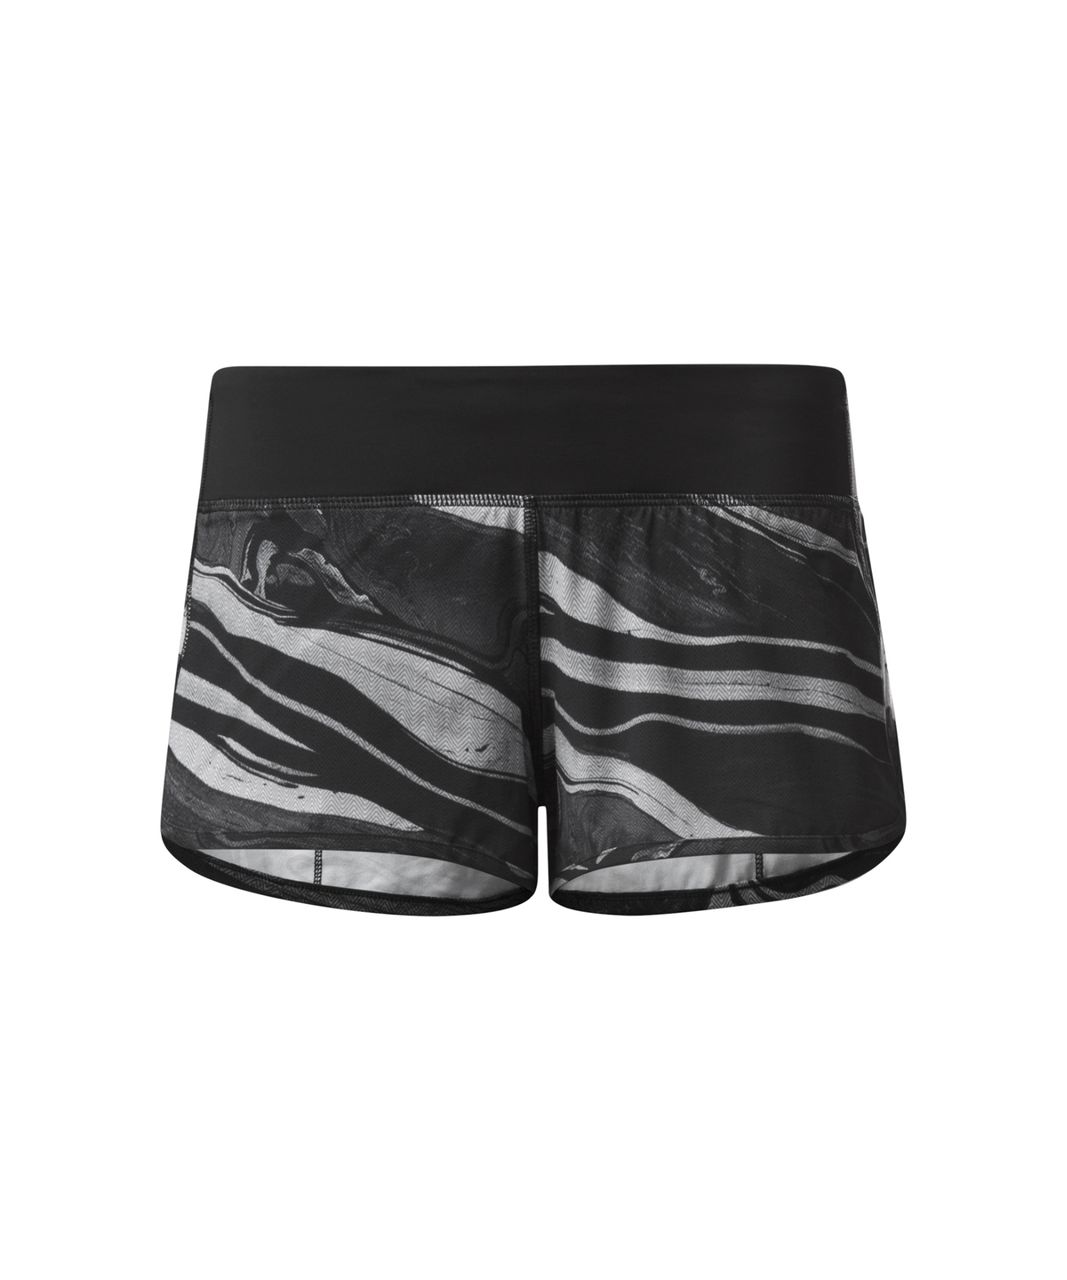 Lululemon Speed Short - Marbled Mix Speed Short White Black / Black